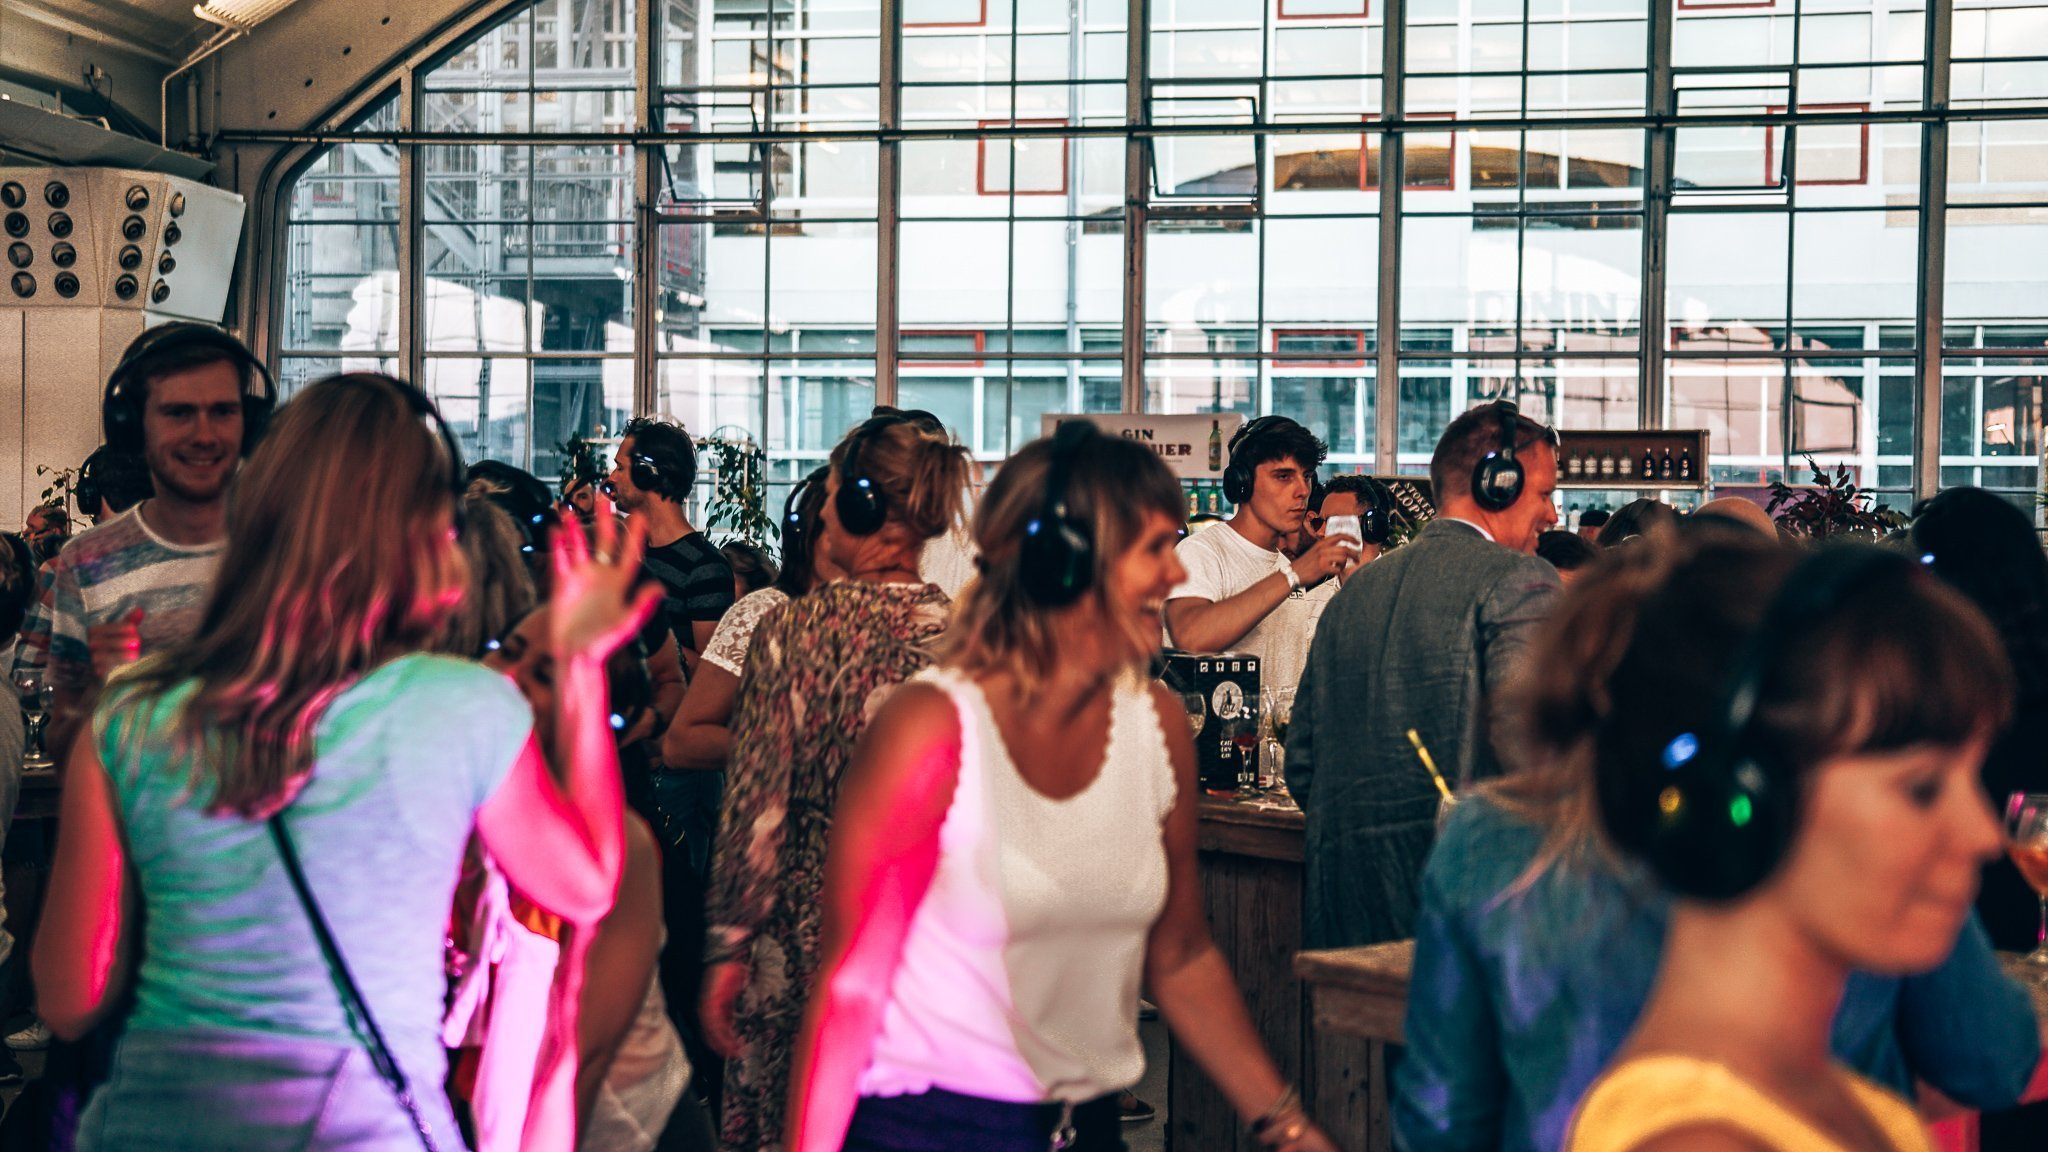 Loopuyt Silent Disco, Ginfestival Rotterdam, Alles over gin..05